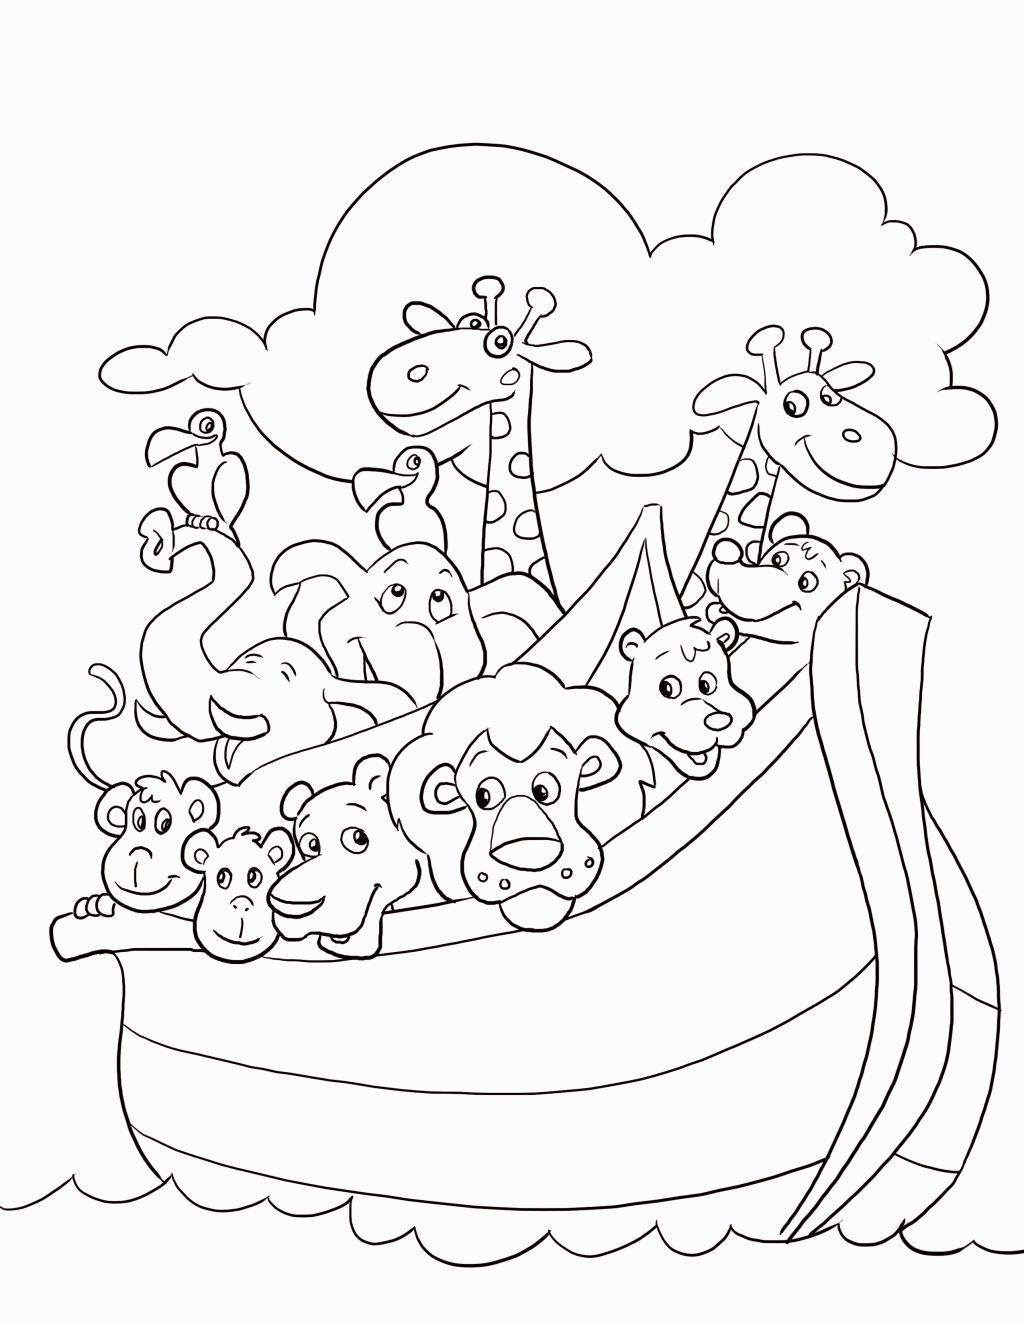 preschool bible coloring pages - photo#8